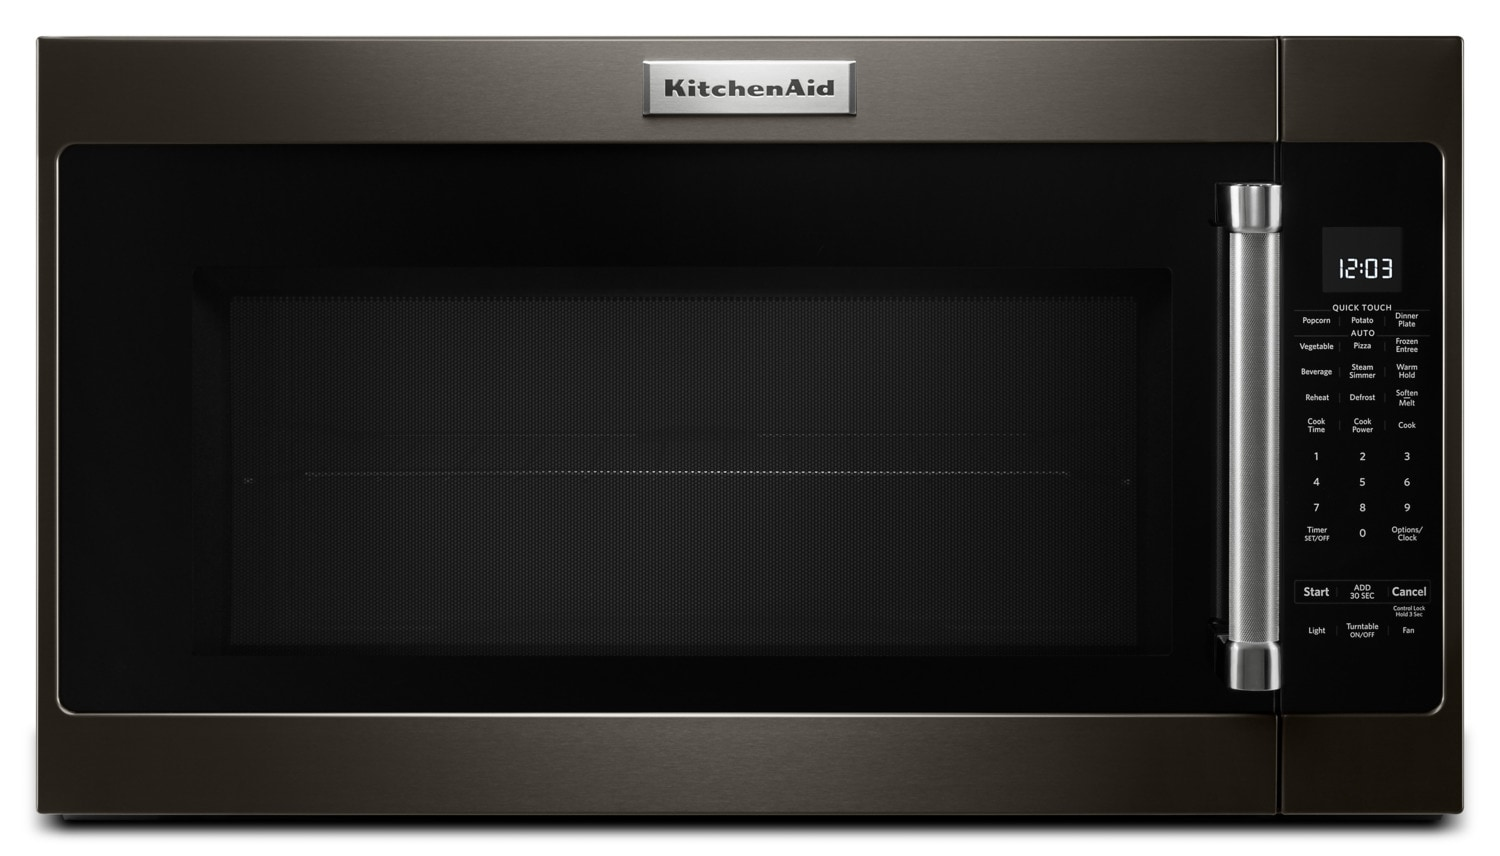 KitchenAid Black Stainless Steel Over-the-Range Microwave (2.0 Cu. Ft.) - YKMHS120EBS